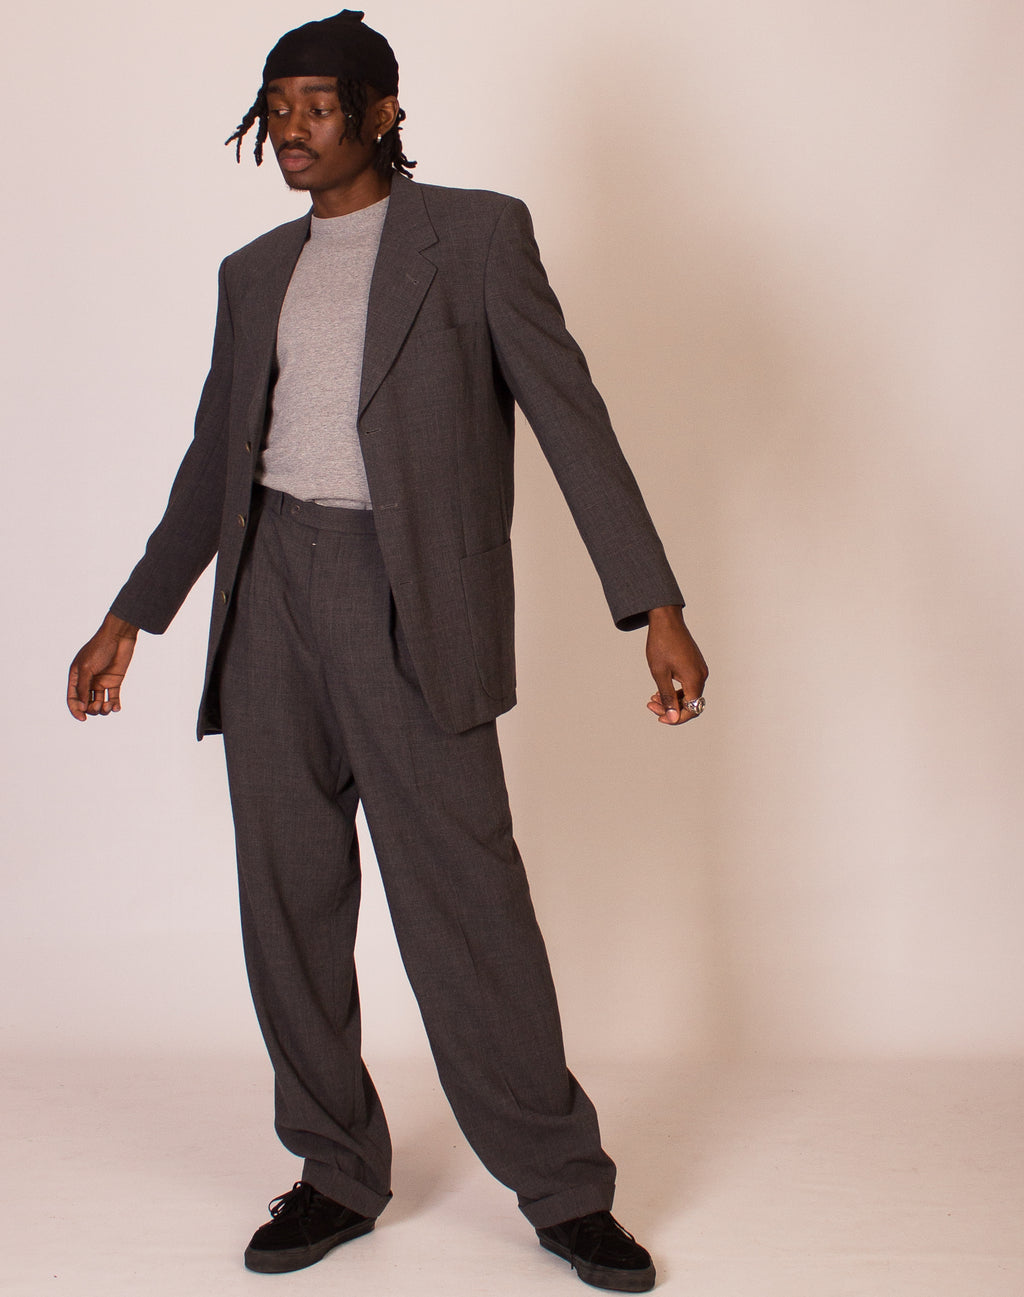 KARL LAGERFELD CHARCOAL RELAXED SUIT